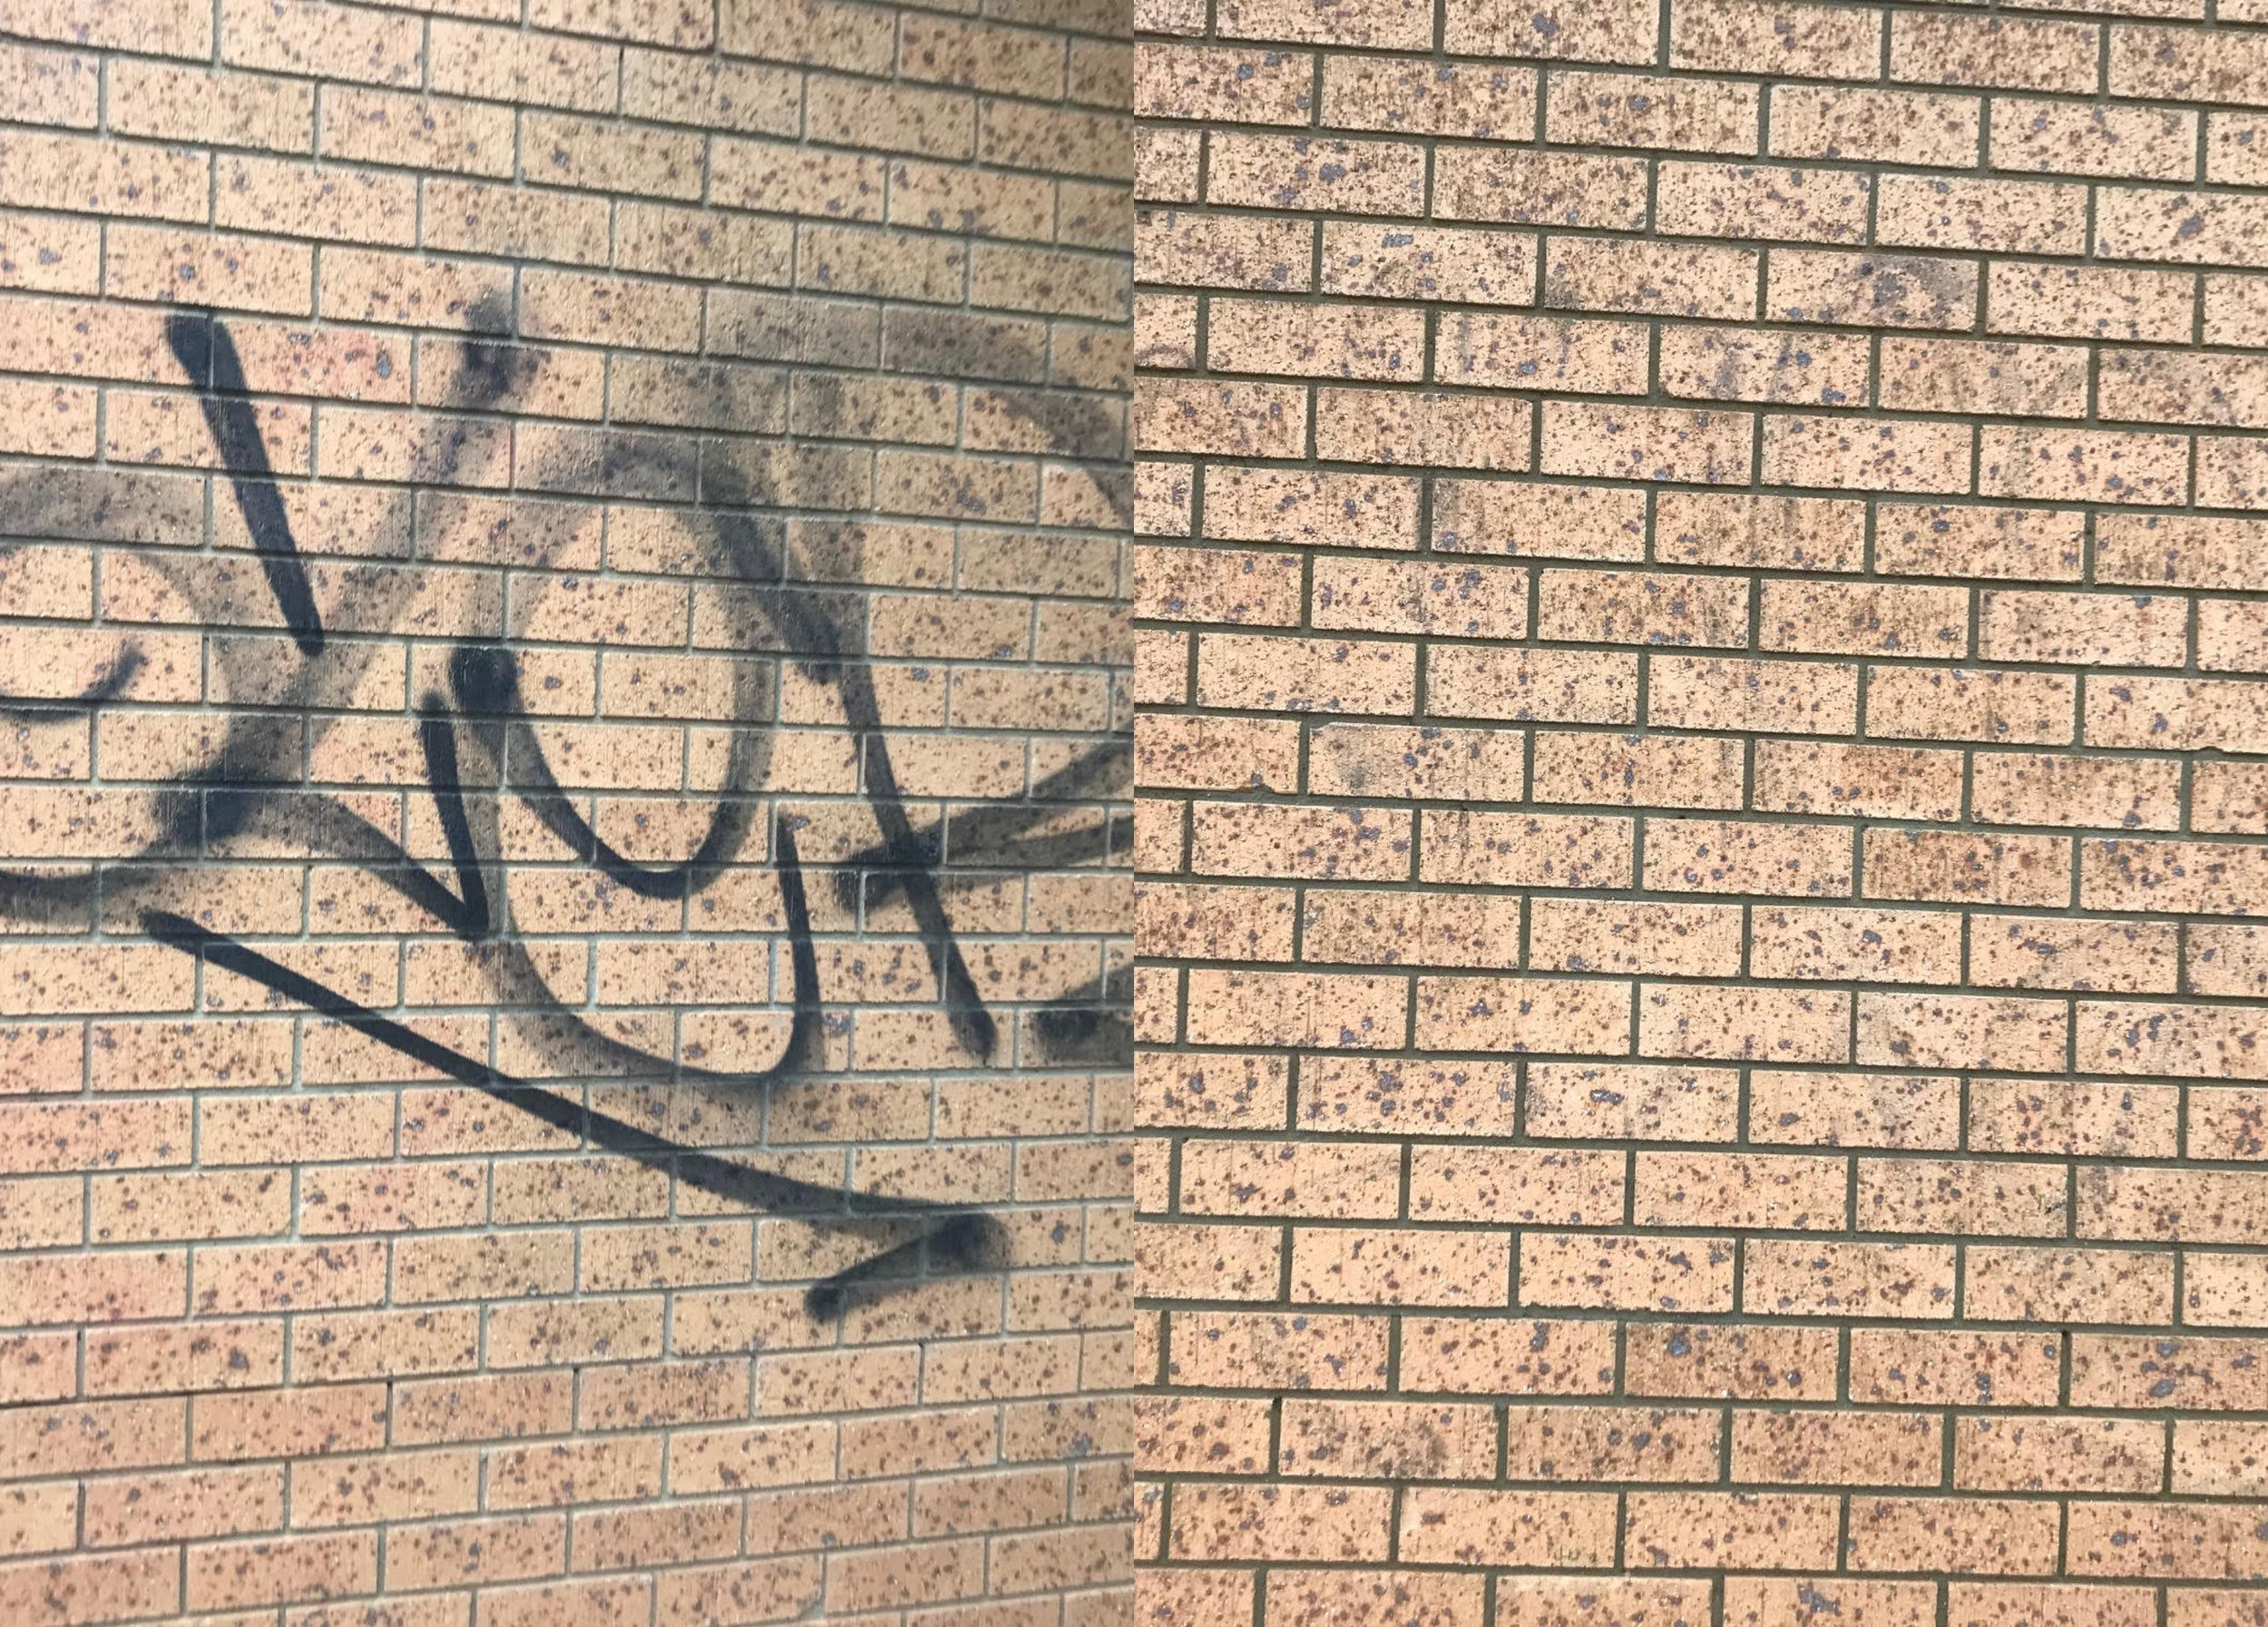 Graffiti removal from exterior wall